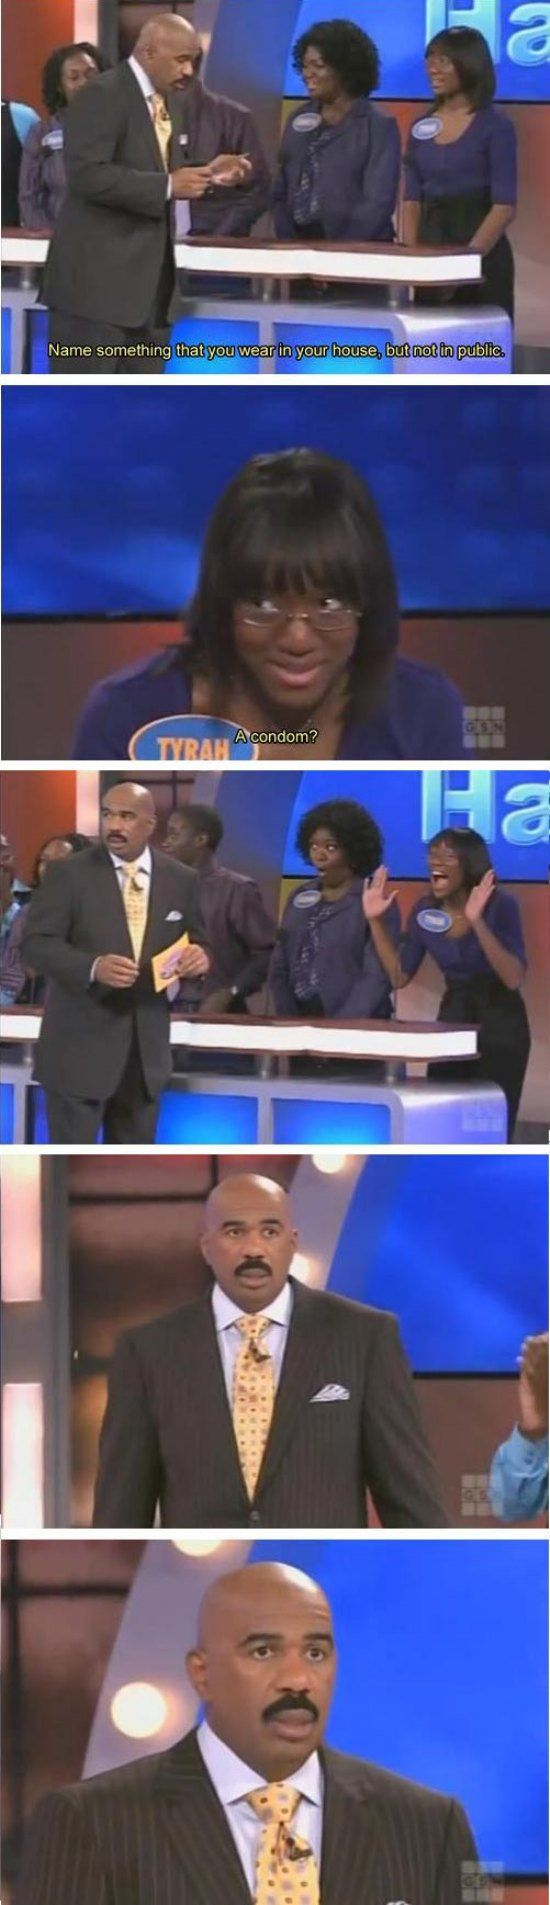 20 of the greatest moments from Steve Harvey's Family Feud (20 Photos) wear in your house but not in public